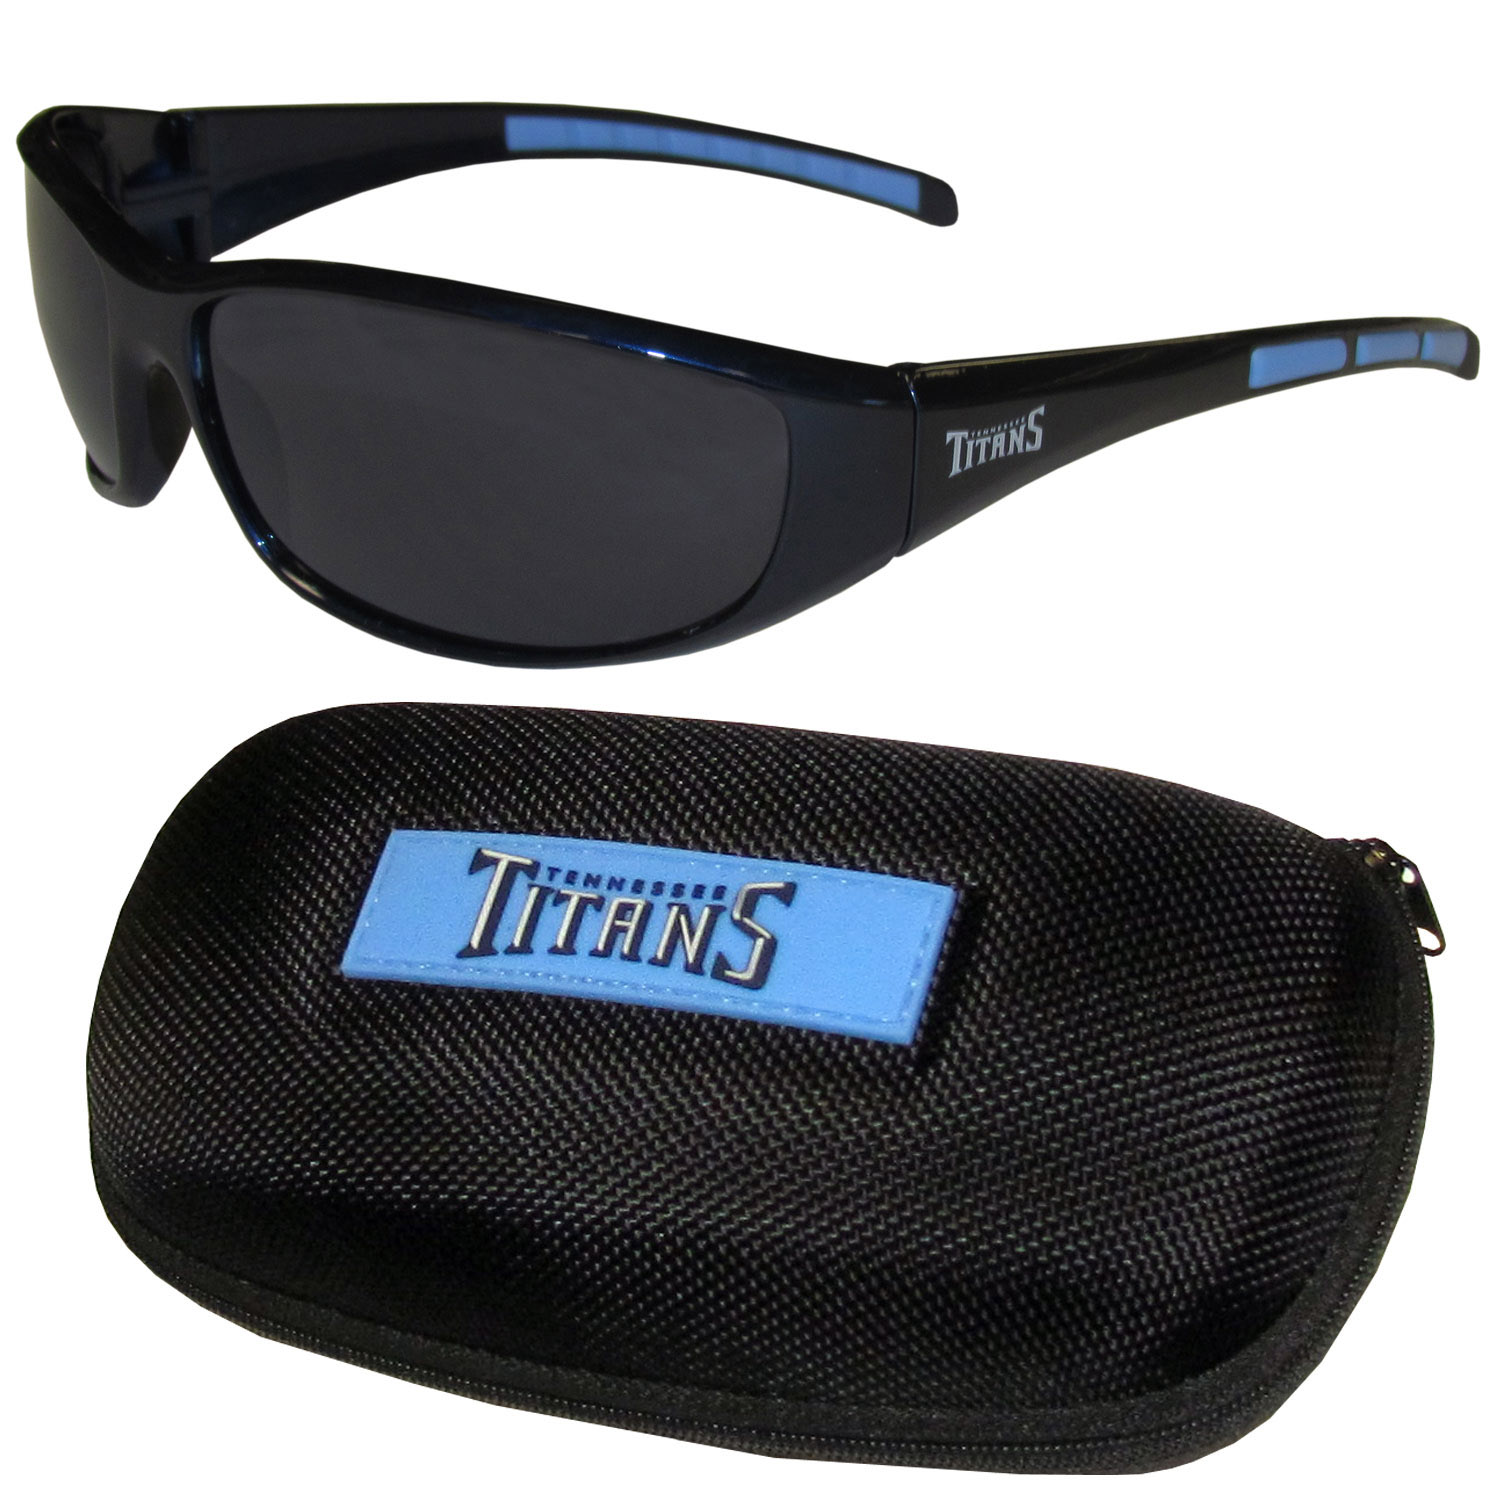 Tennessee Titans Wrap Sunglass and Case Set - This great set includes a high quality pair of Tennessee Titans wrap sunglasses and hard carrying case.